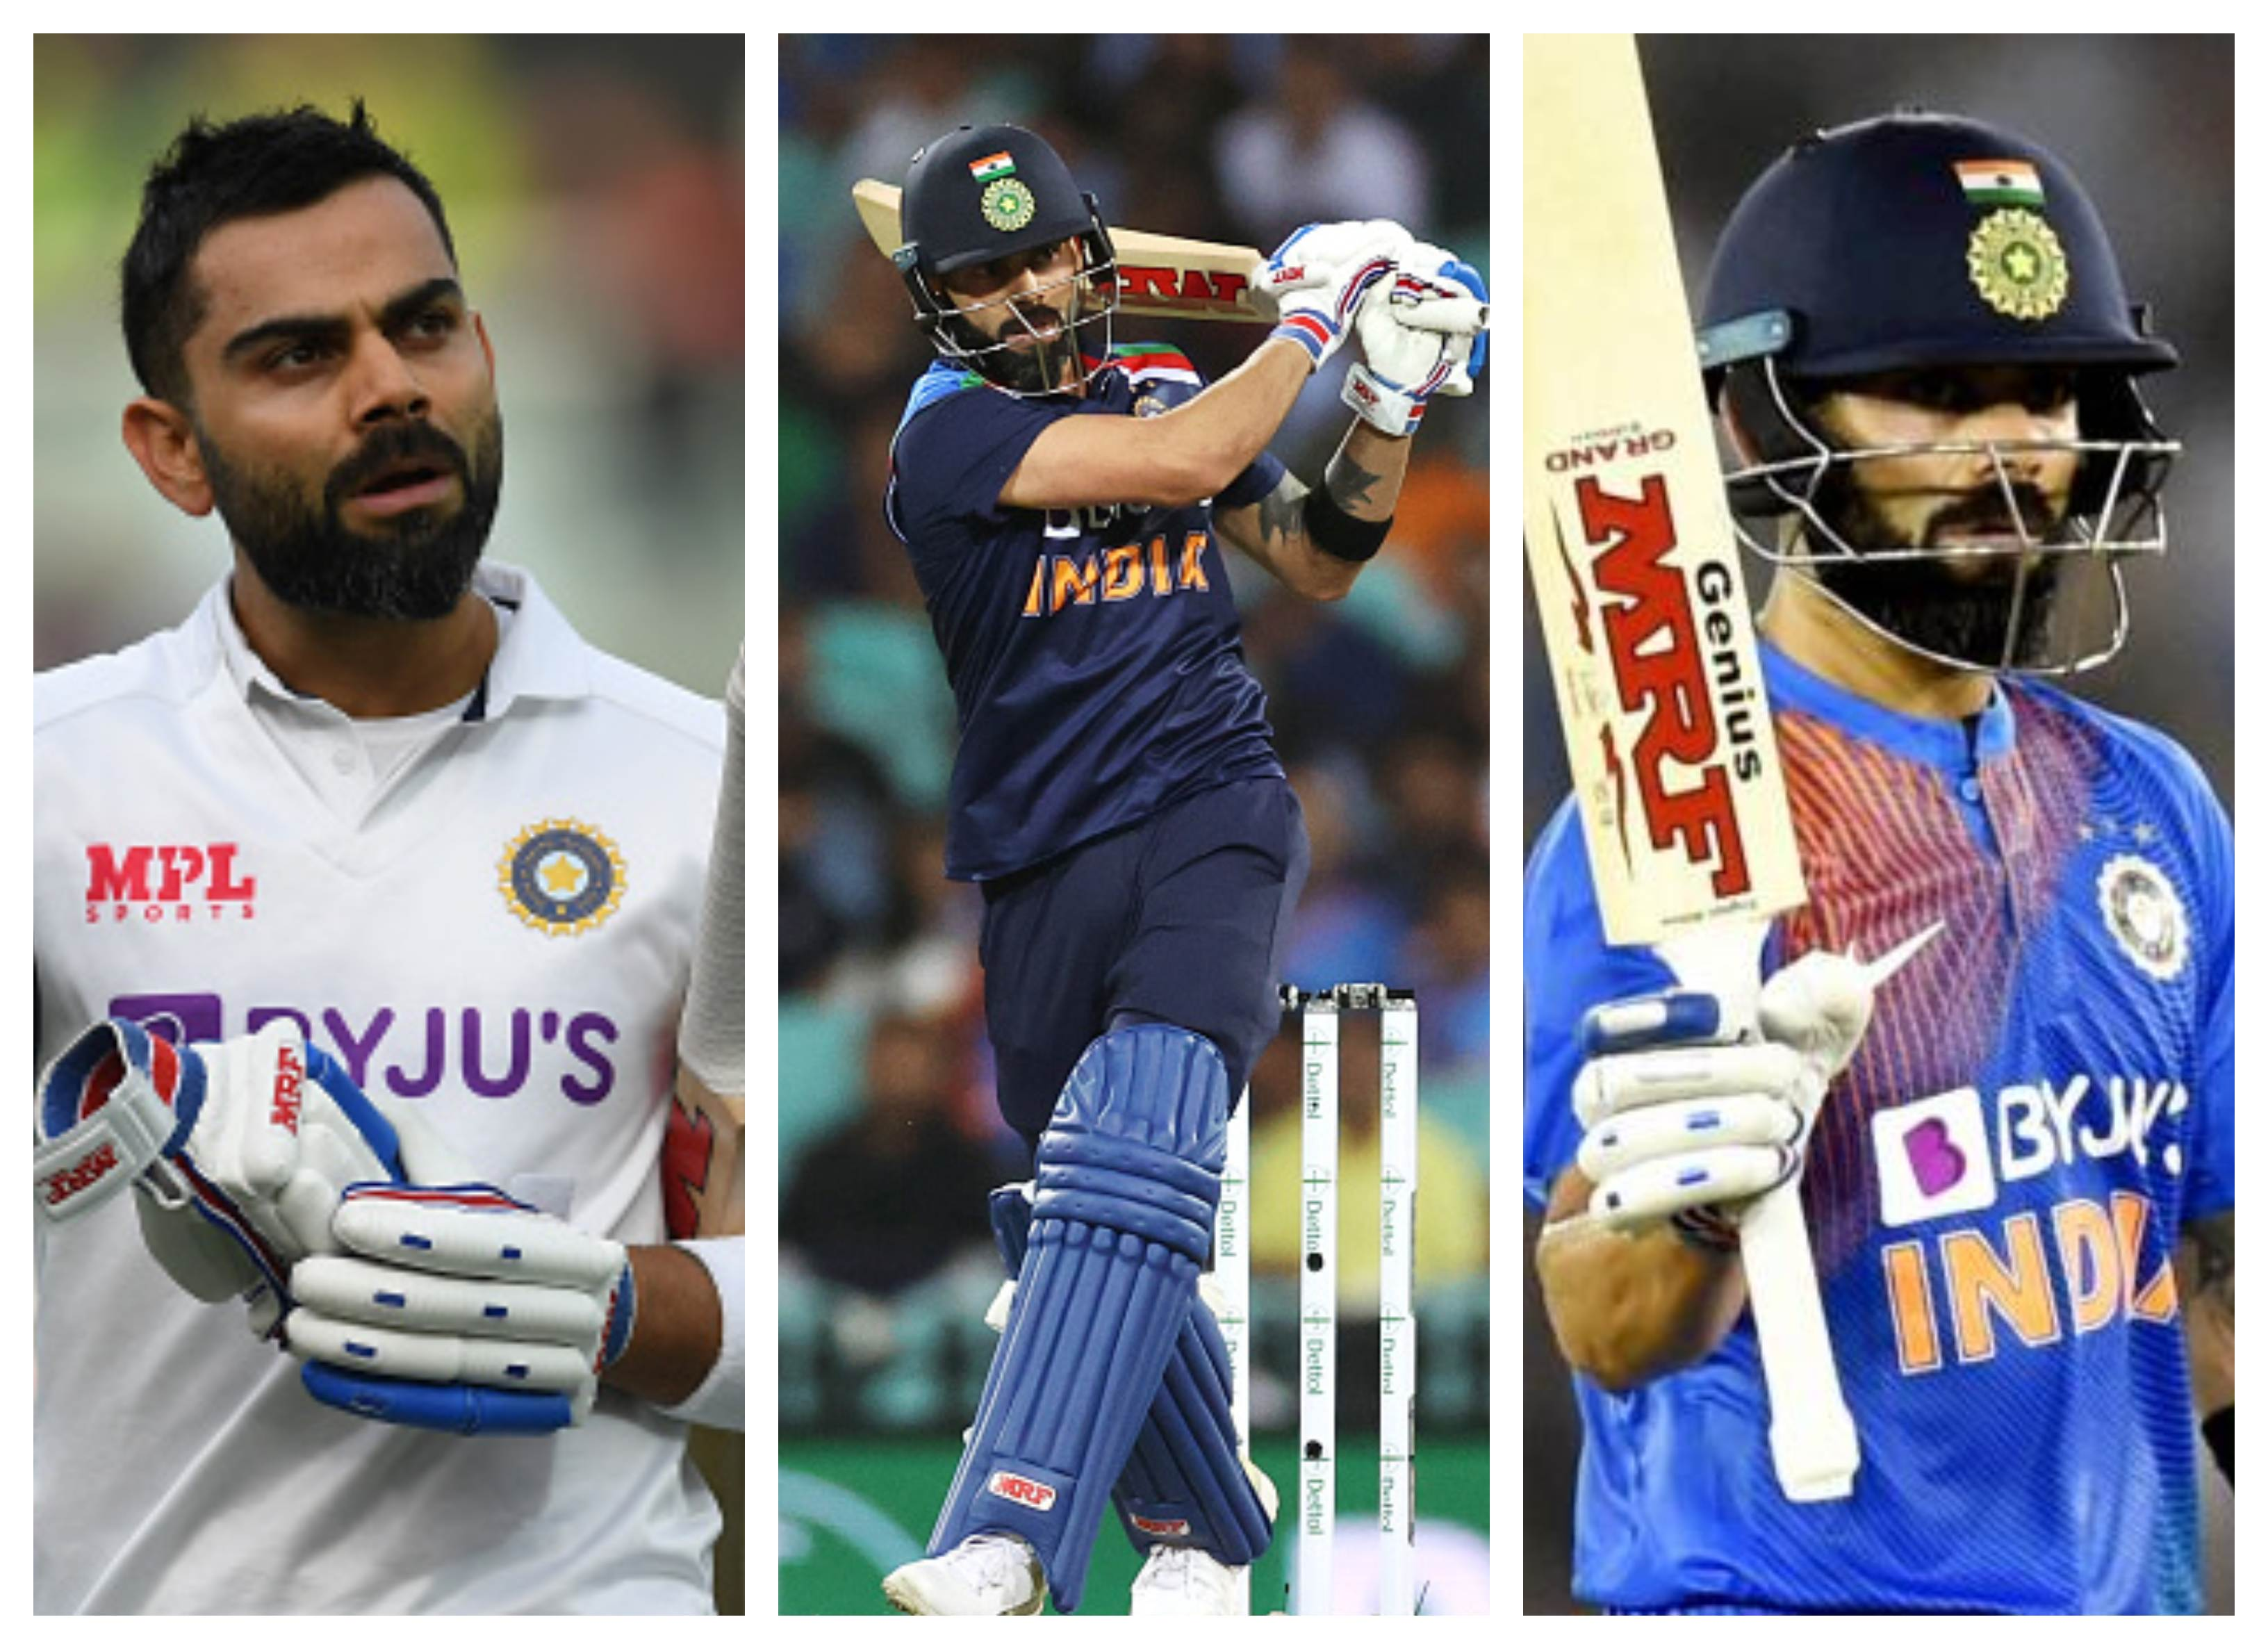 ICC bestowed Virat Kohli with two major awards for his fabulous showing in the last decade | Getty